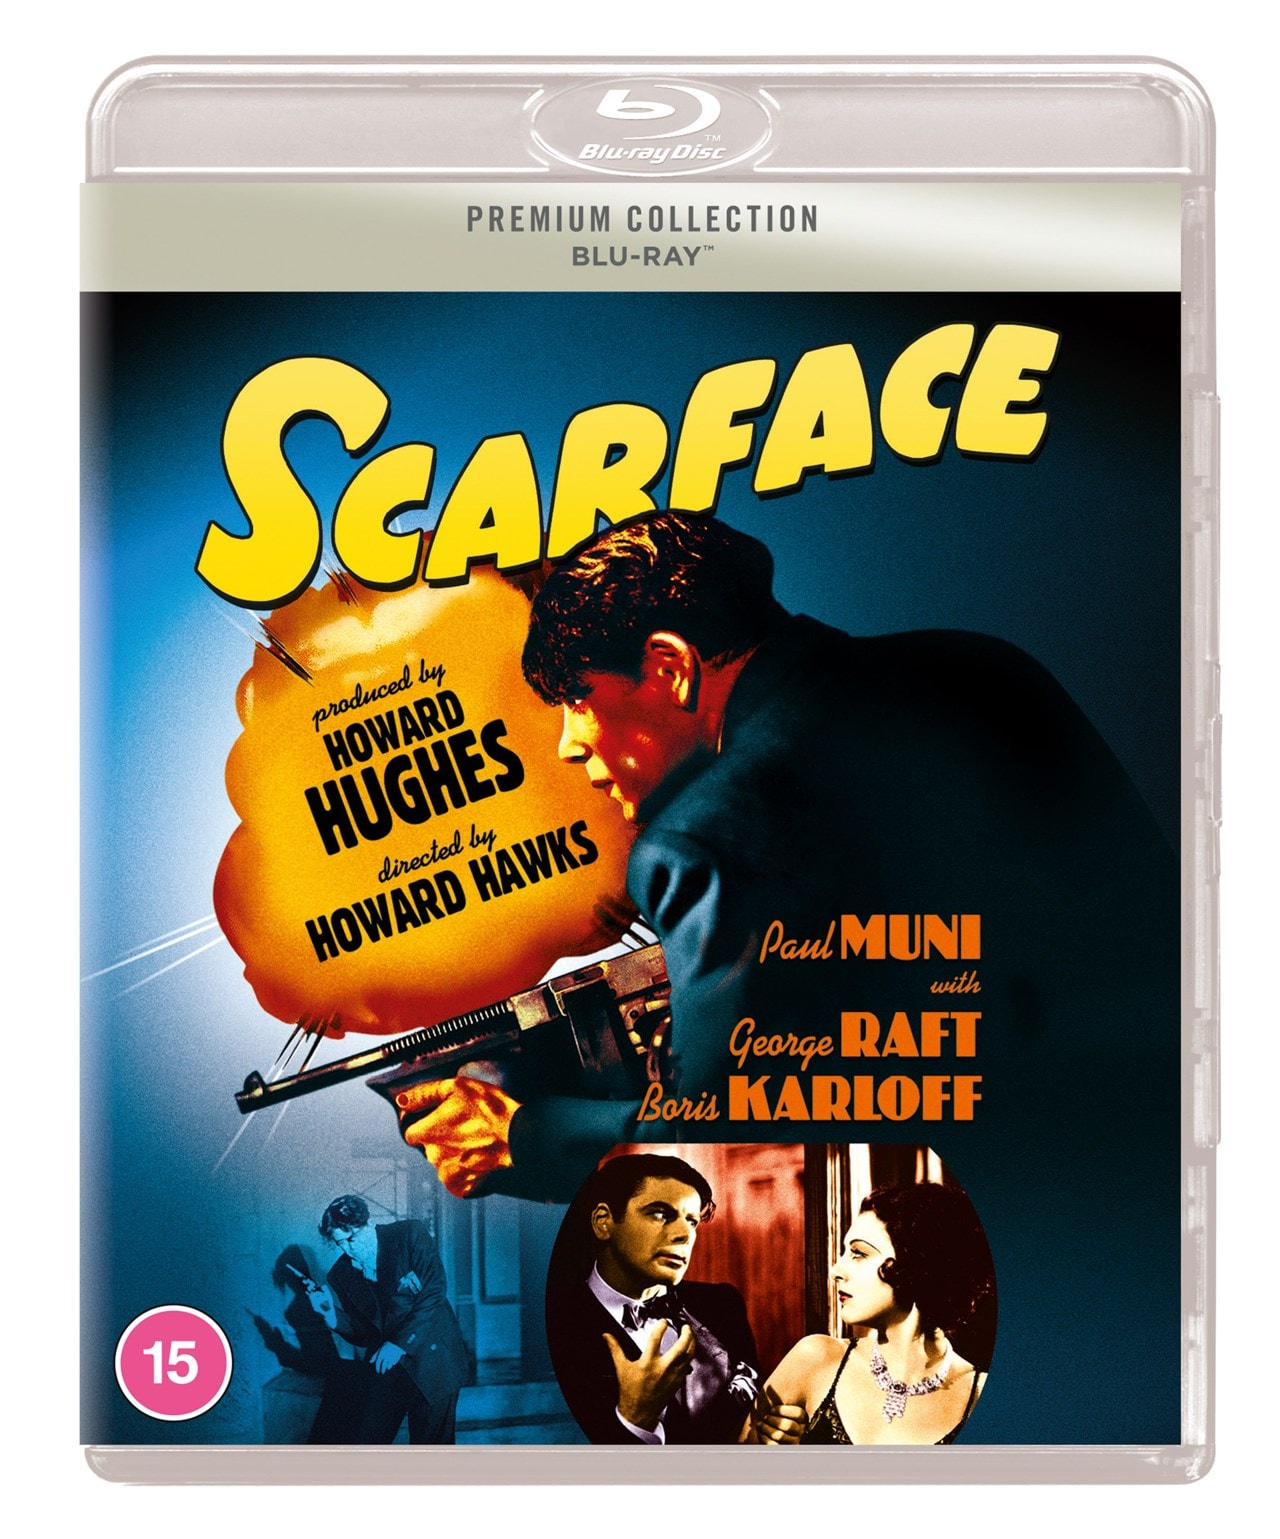 Scarface (hmv Exclusive) - The Premium Collection - 2